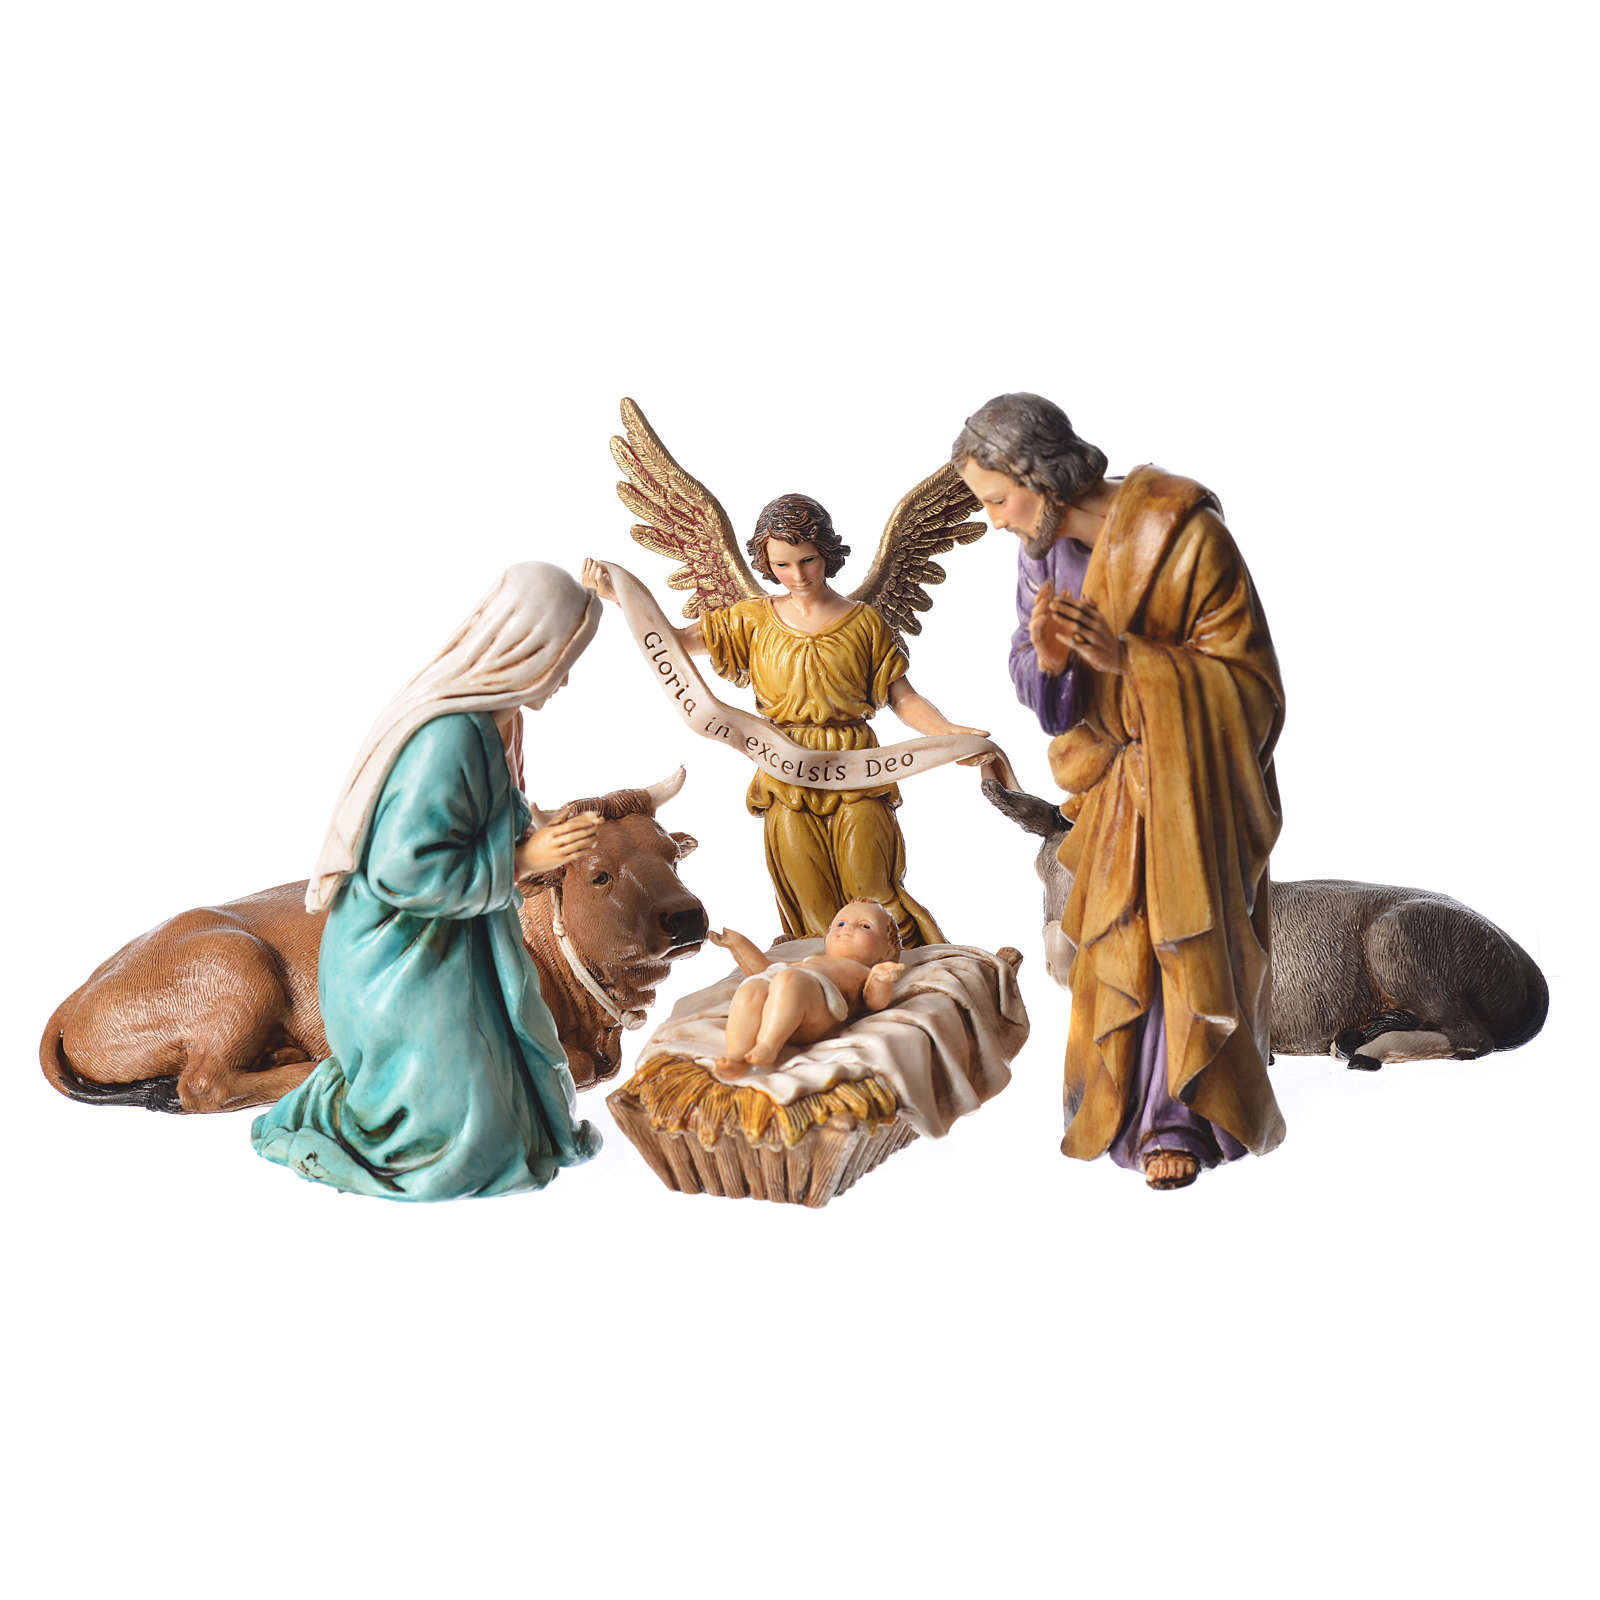 Moranduzzo nativity scene 13cm, 6 pieces 4